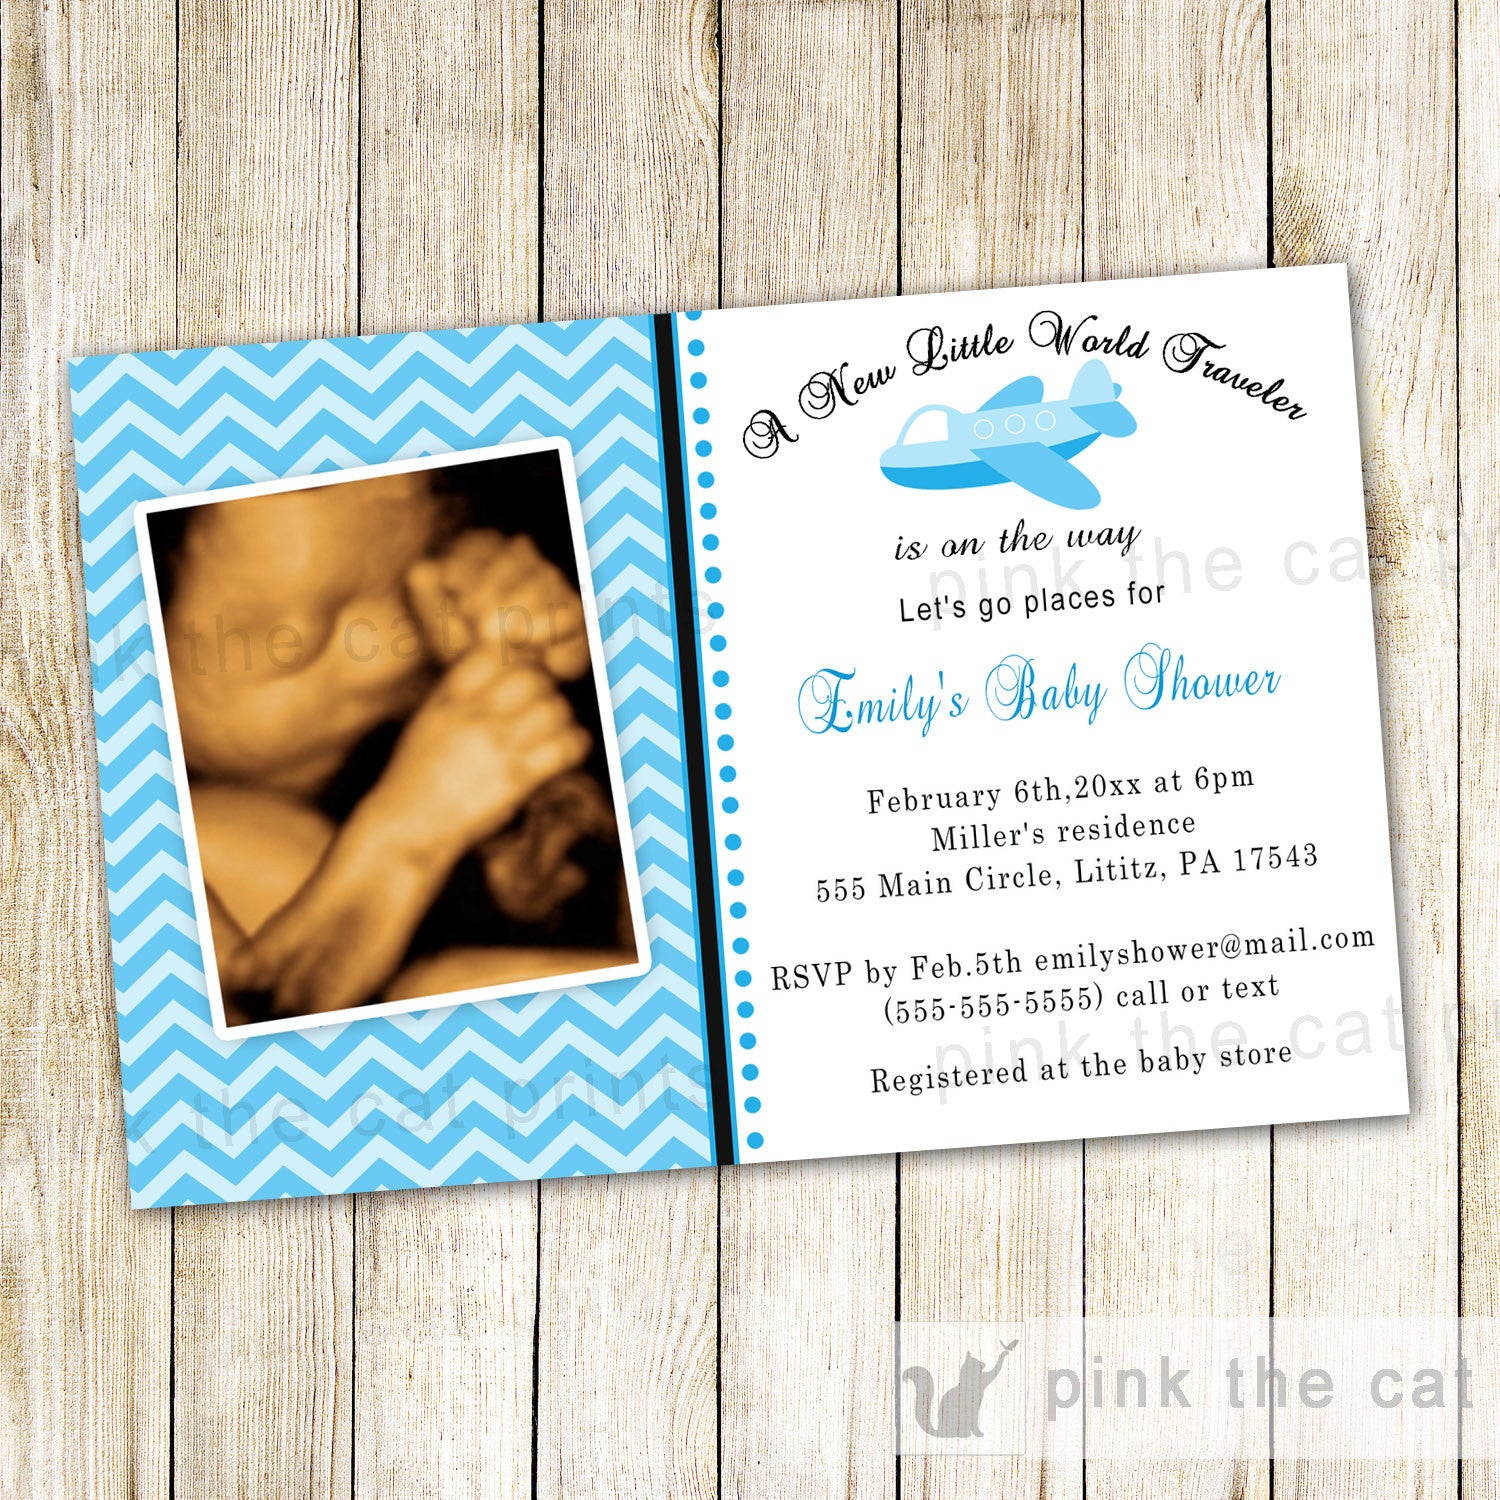 Planes Invitation Card Traveler Baby Boy Shower Photo – Pink The Cat